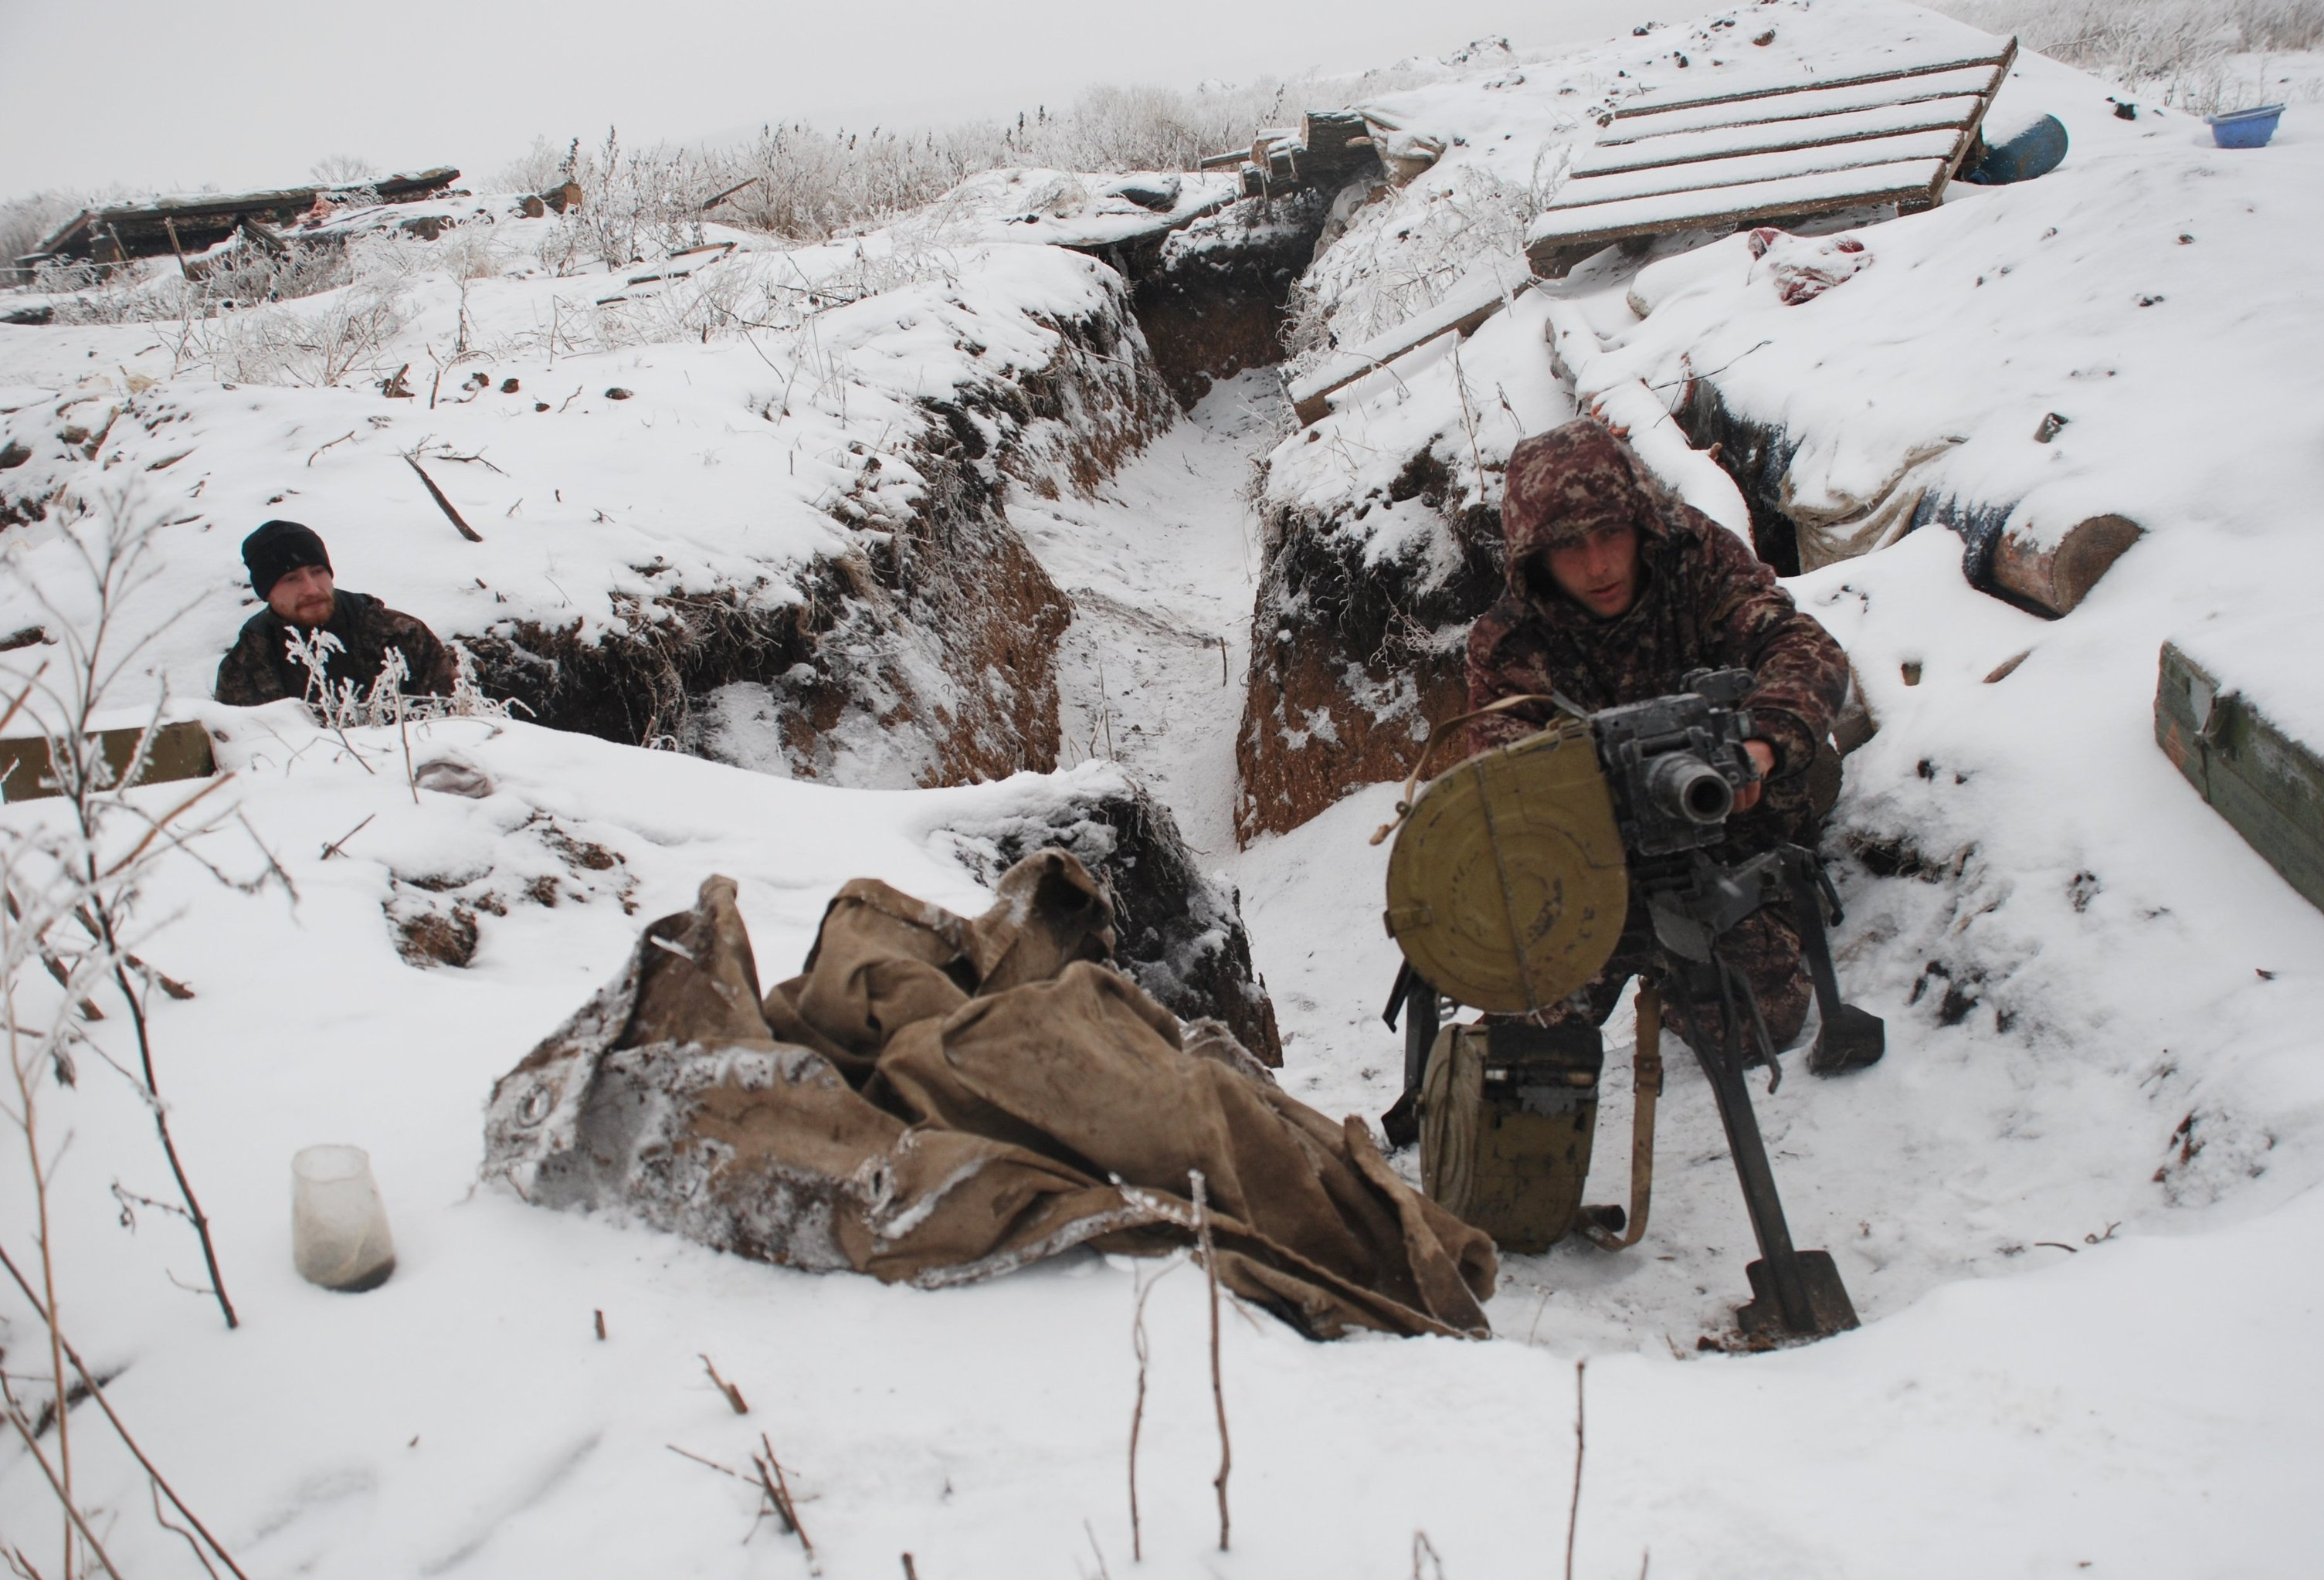 DPR militiamen on demarcation line